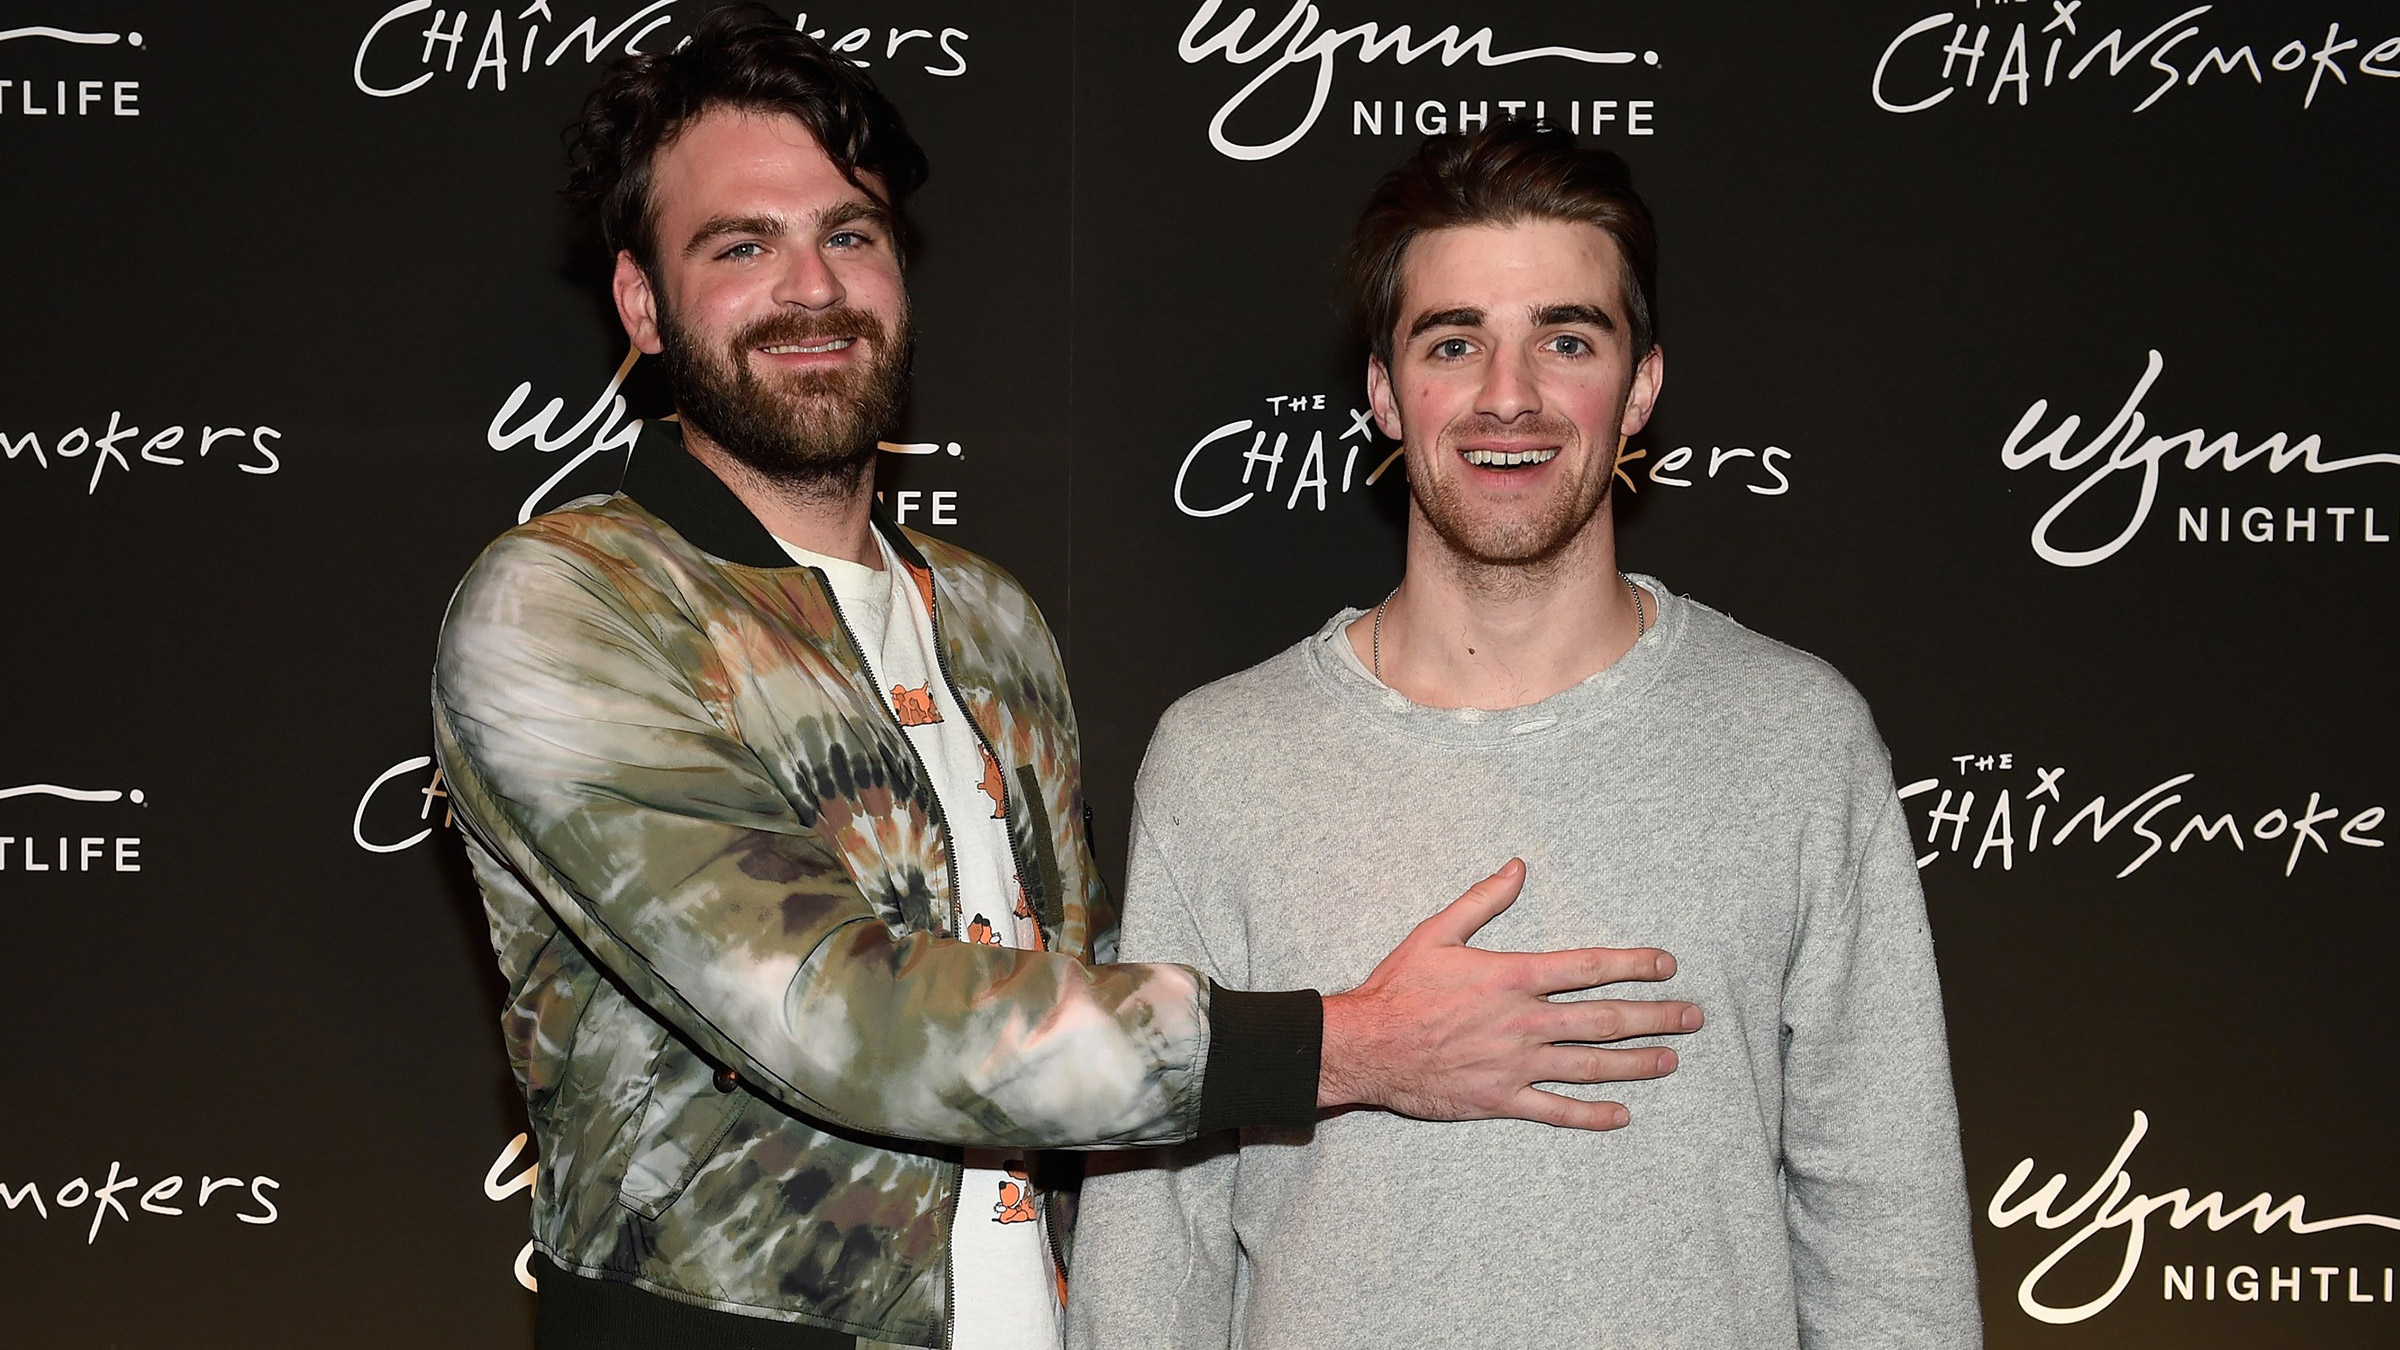 Chainsmokers teaer